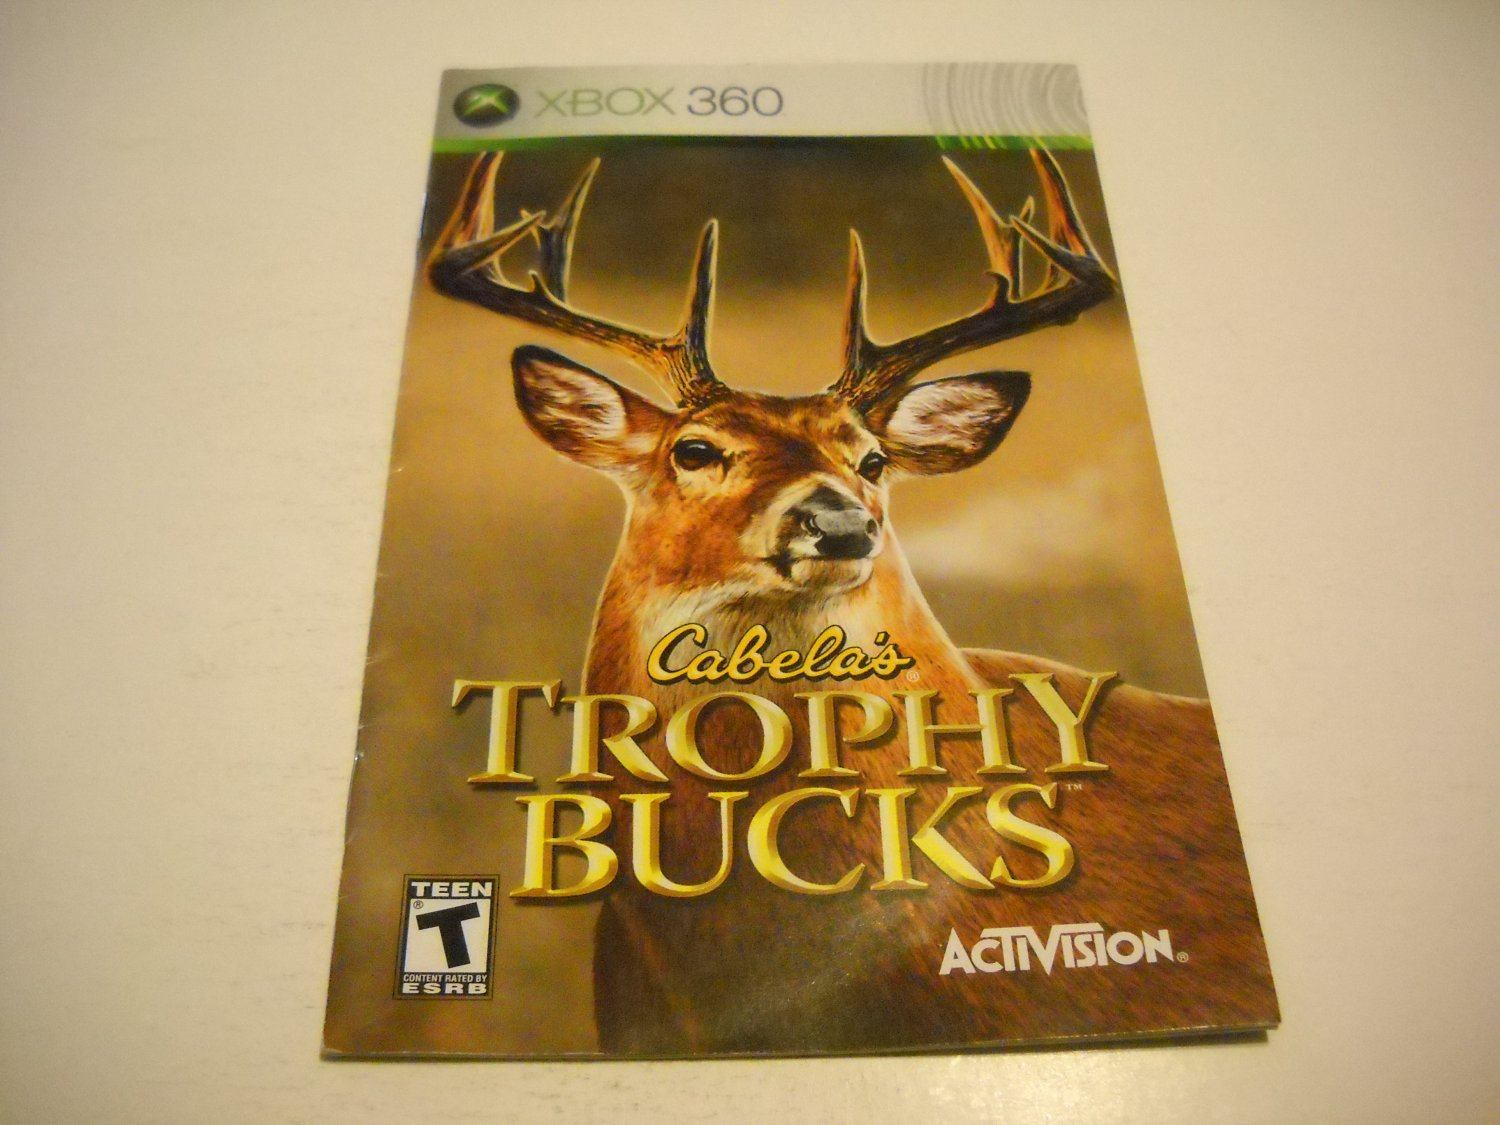 Manual ONLY ~  for Cabela's Trophy Bucks   - Xbox 360 Instruction Booklet